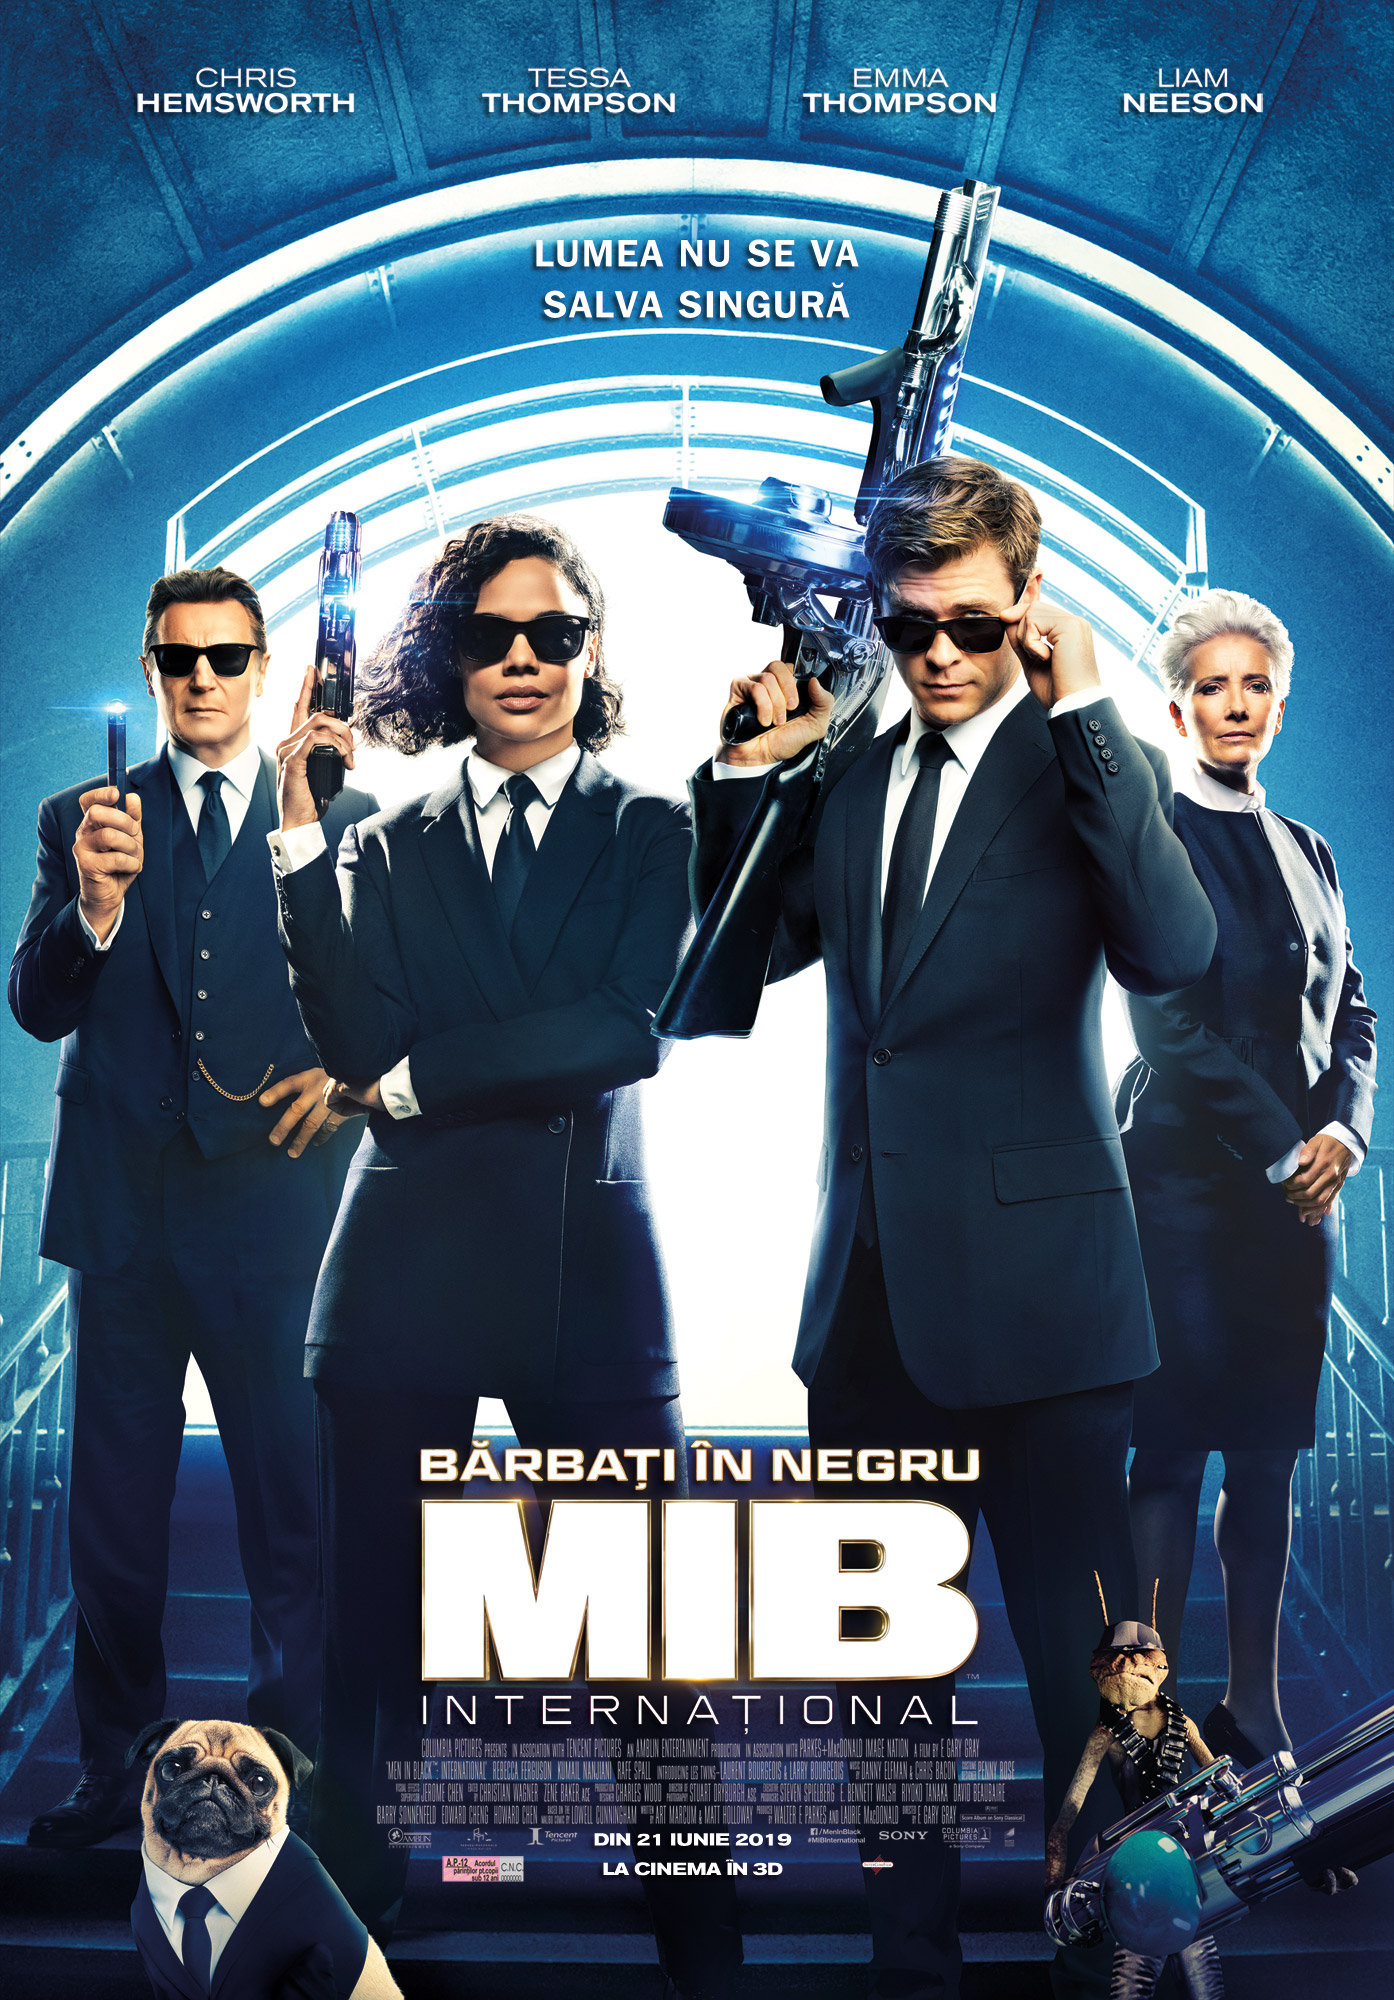 Barbati in negru International – Men in Black: International